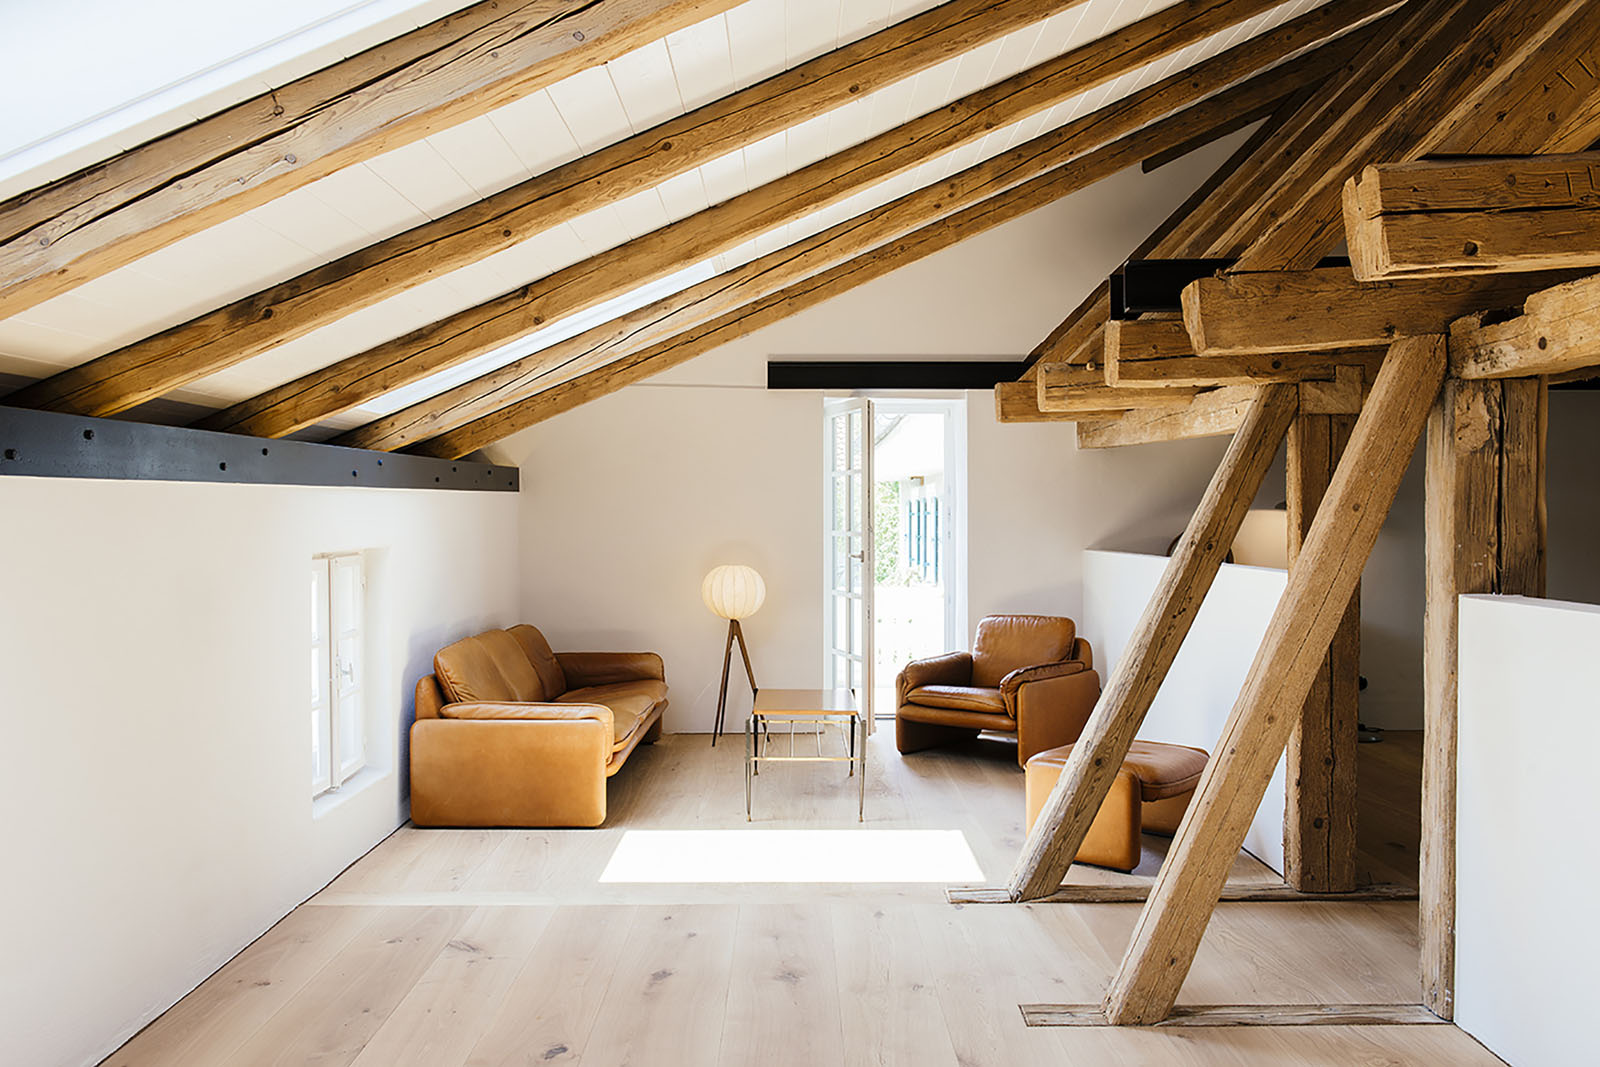 Renovated Attic Space with Exposed Wood Beams